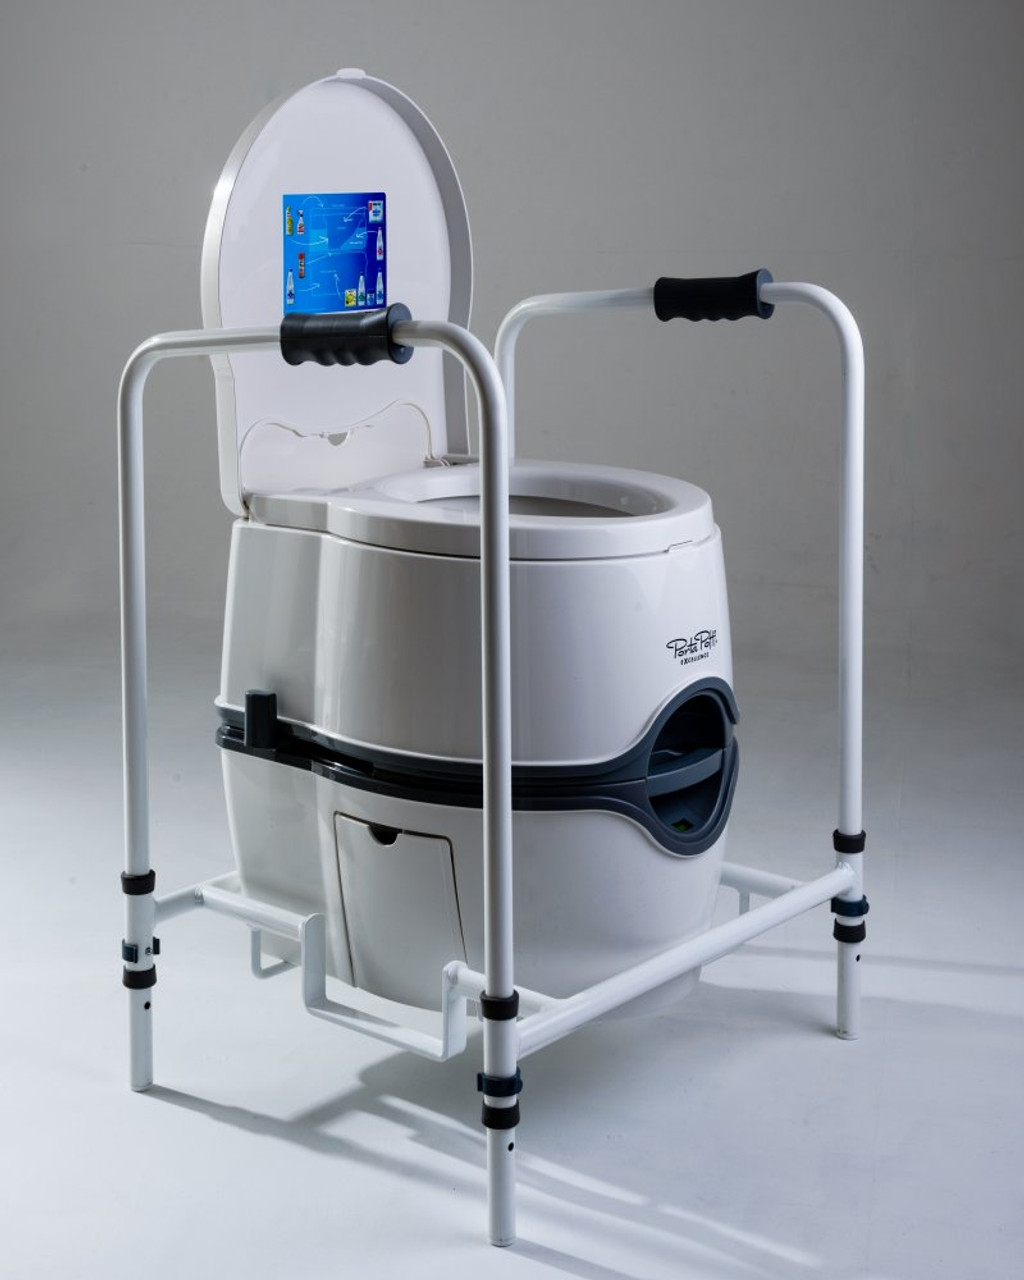 Portable temporary toilet frame for disabled and elderly users shown with a Porta Potti Excellence lid open